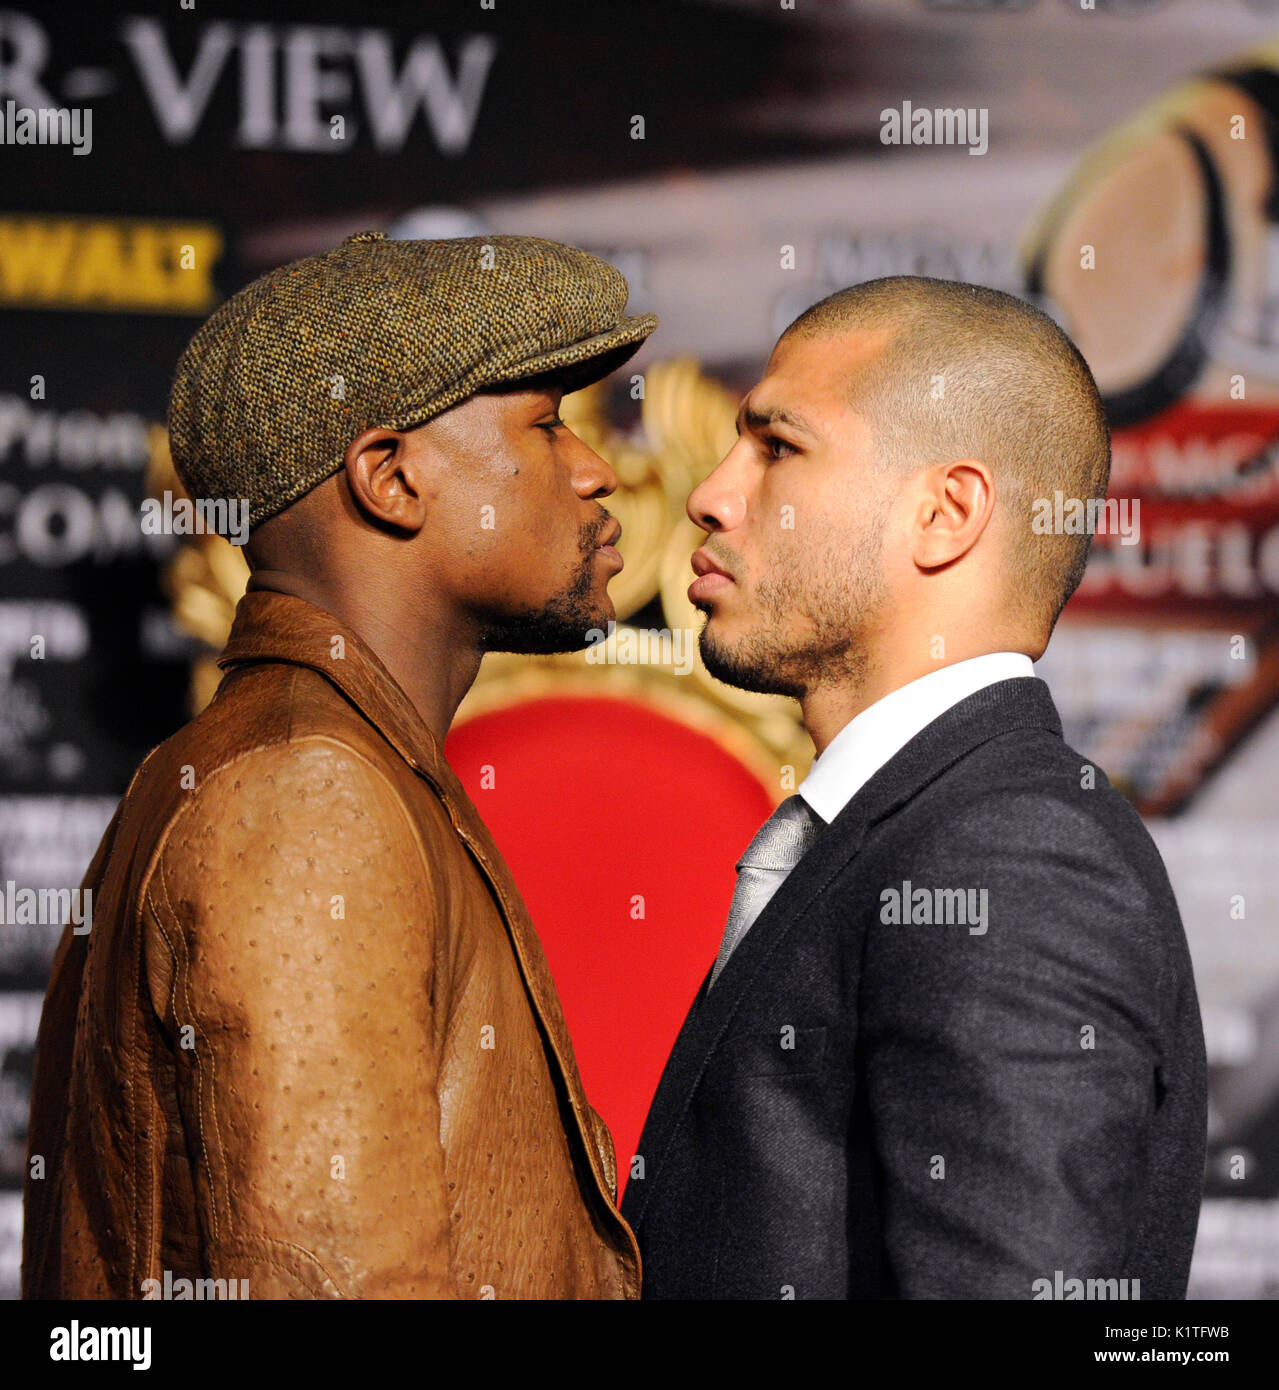 US boxer Floyd Mayweather (L) WBA Super Welterweight World Champion Miguel Cotto Puerto Rico faceoff during press conference Grauman's Chinese Theatre Hollywood March 1,2012. Mayweather Cotto will meet WBA Super Welterweight World Championship fight May 5 MGM Grand Las Vegas. - Stock Image